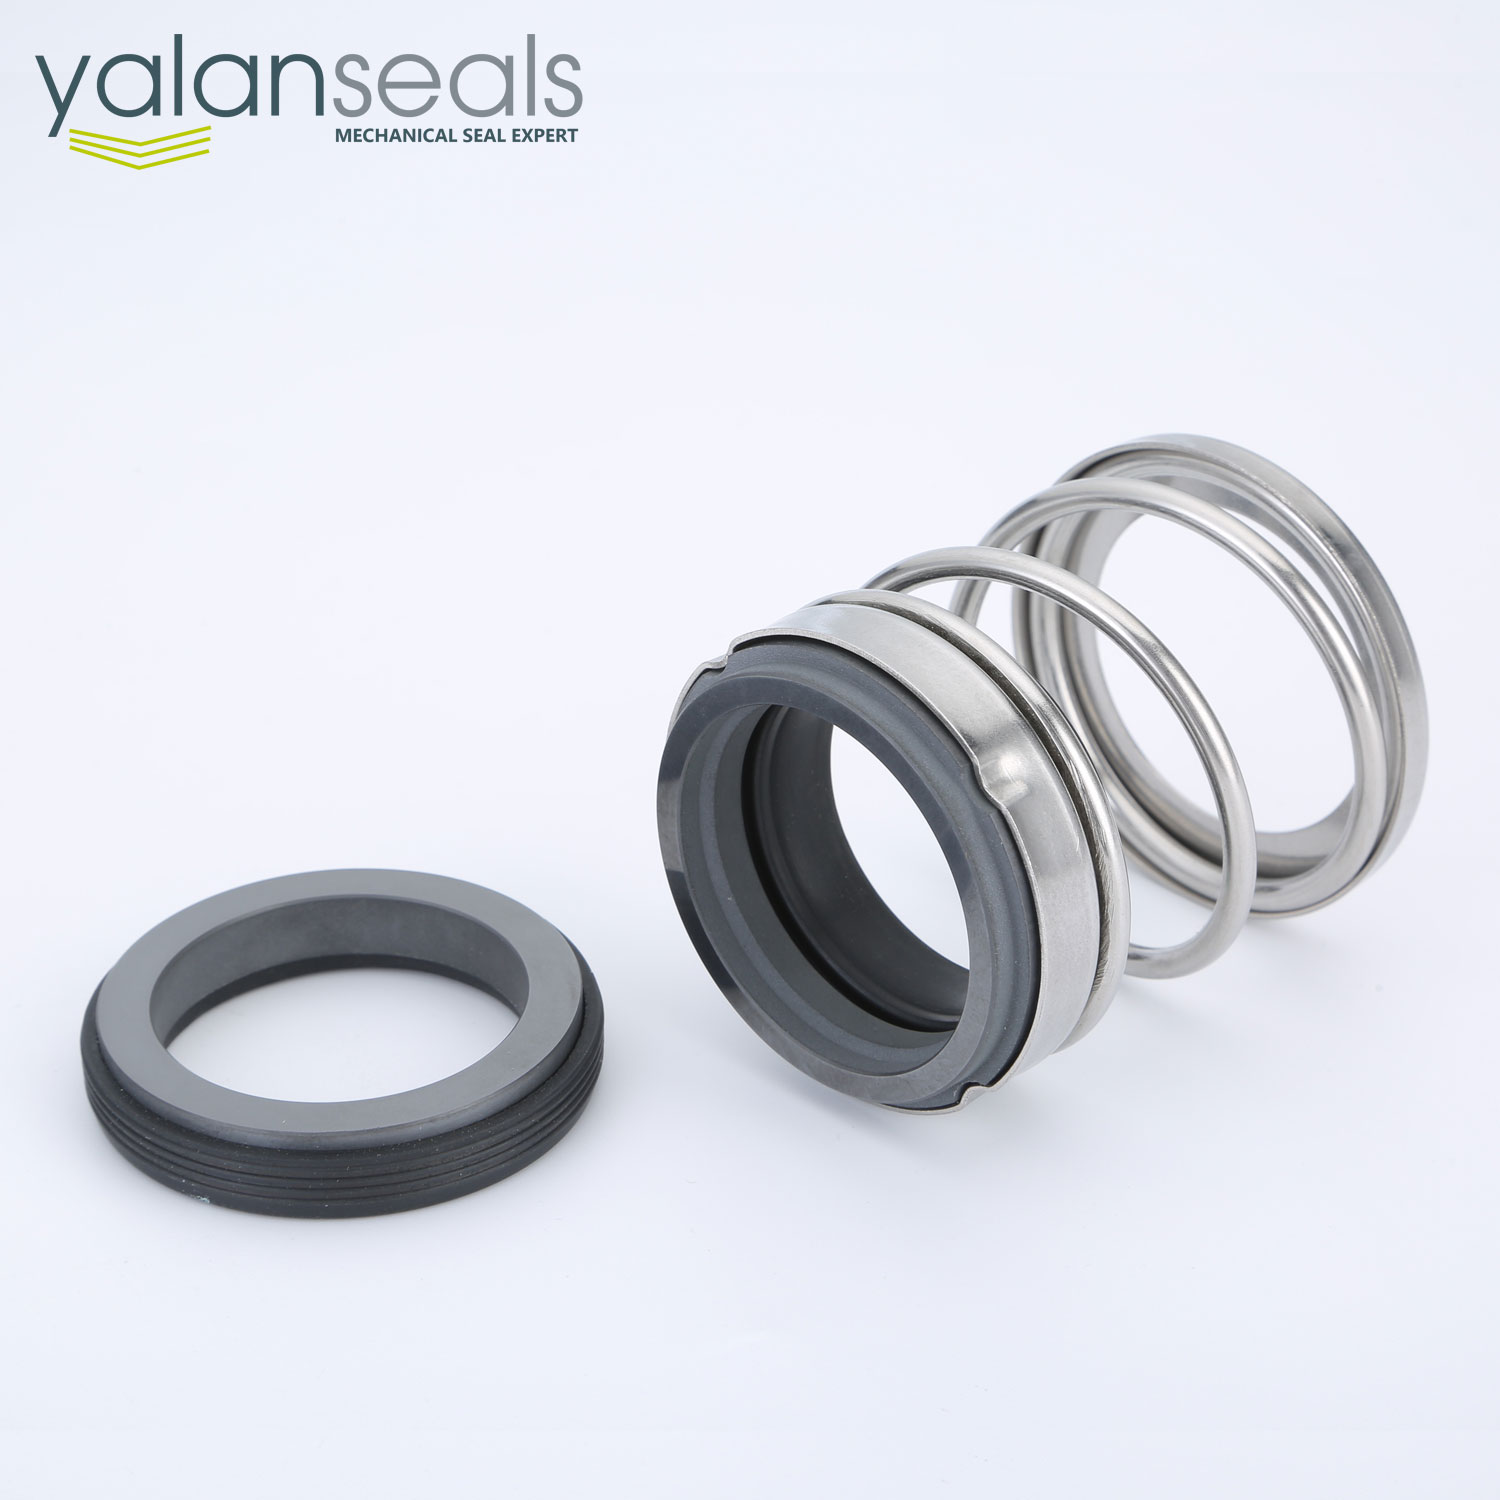 BIA Elastomer Bellow Mechanical Seal